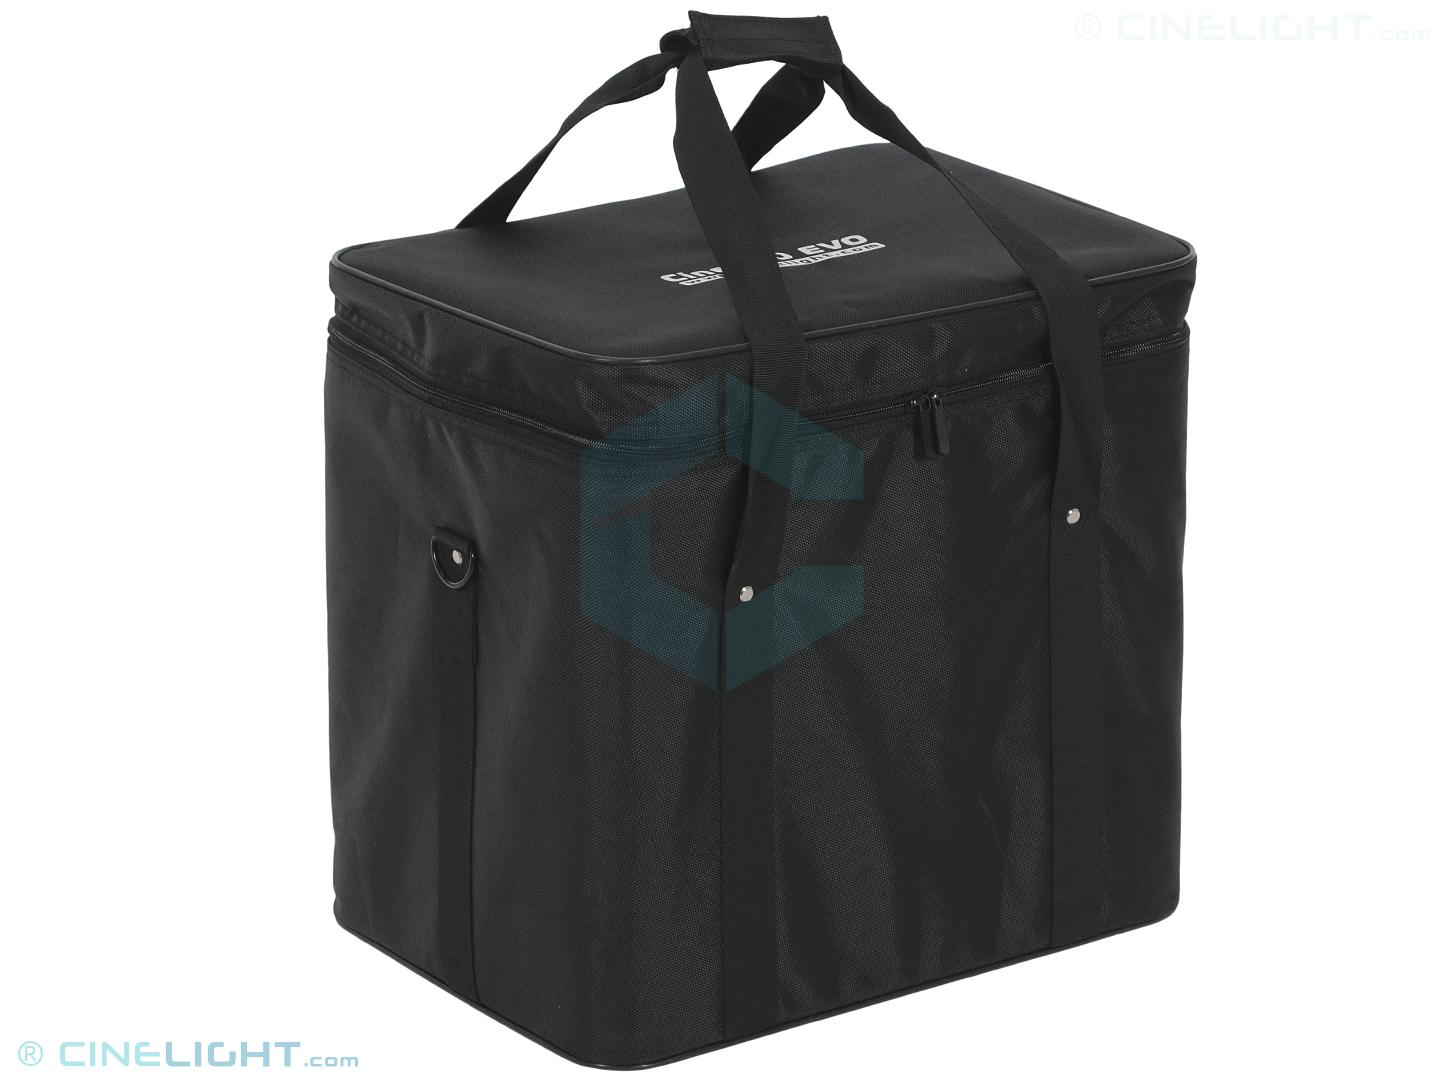 Kit Case - 3 lights